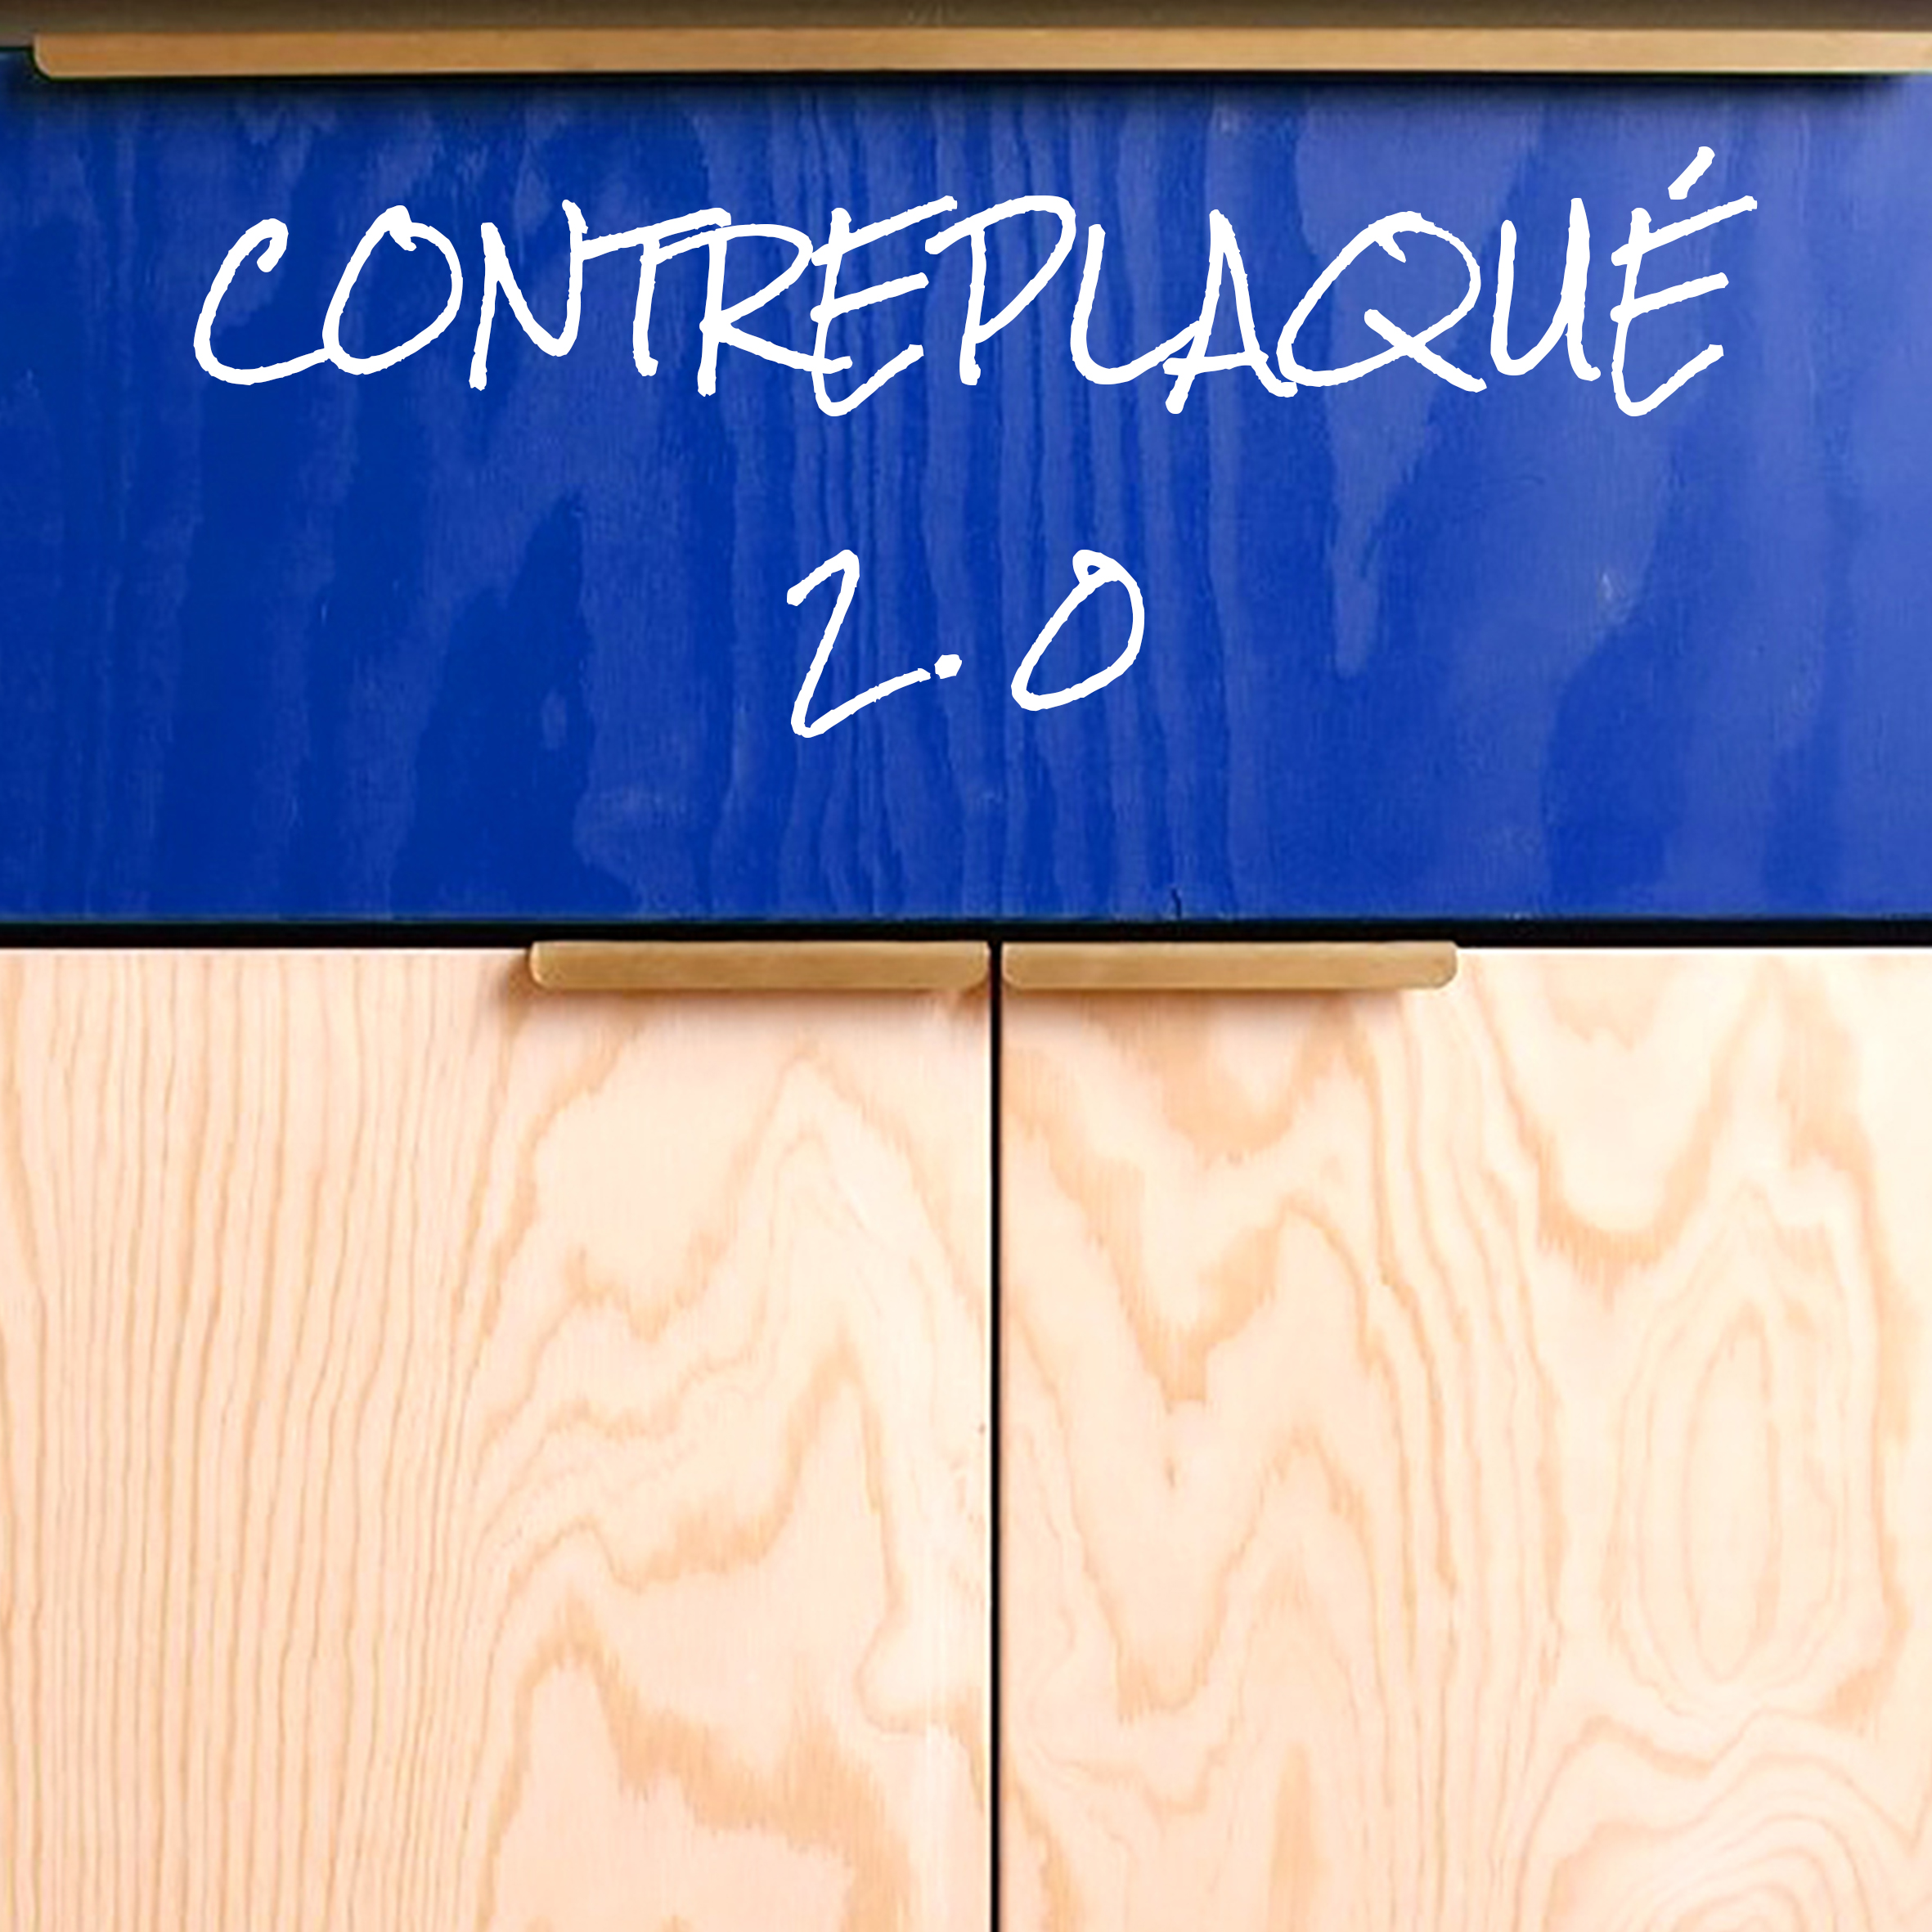 contreplaque-2.0_insta